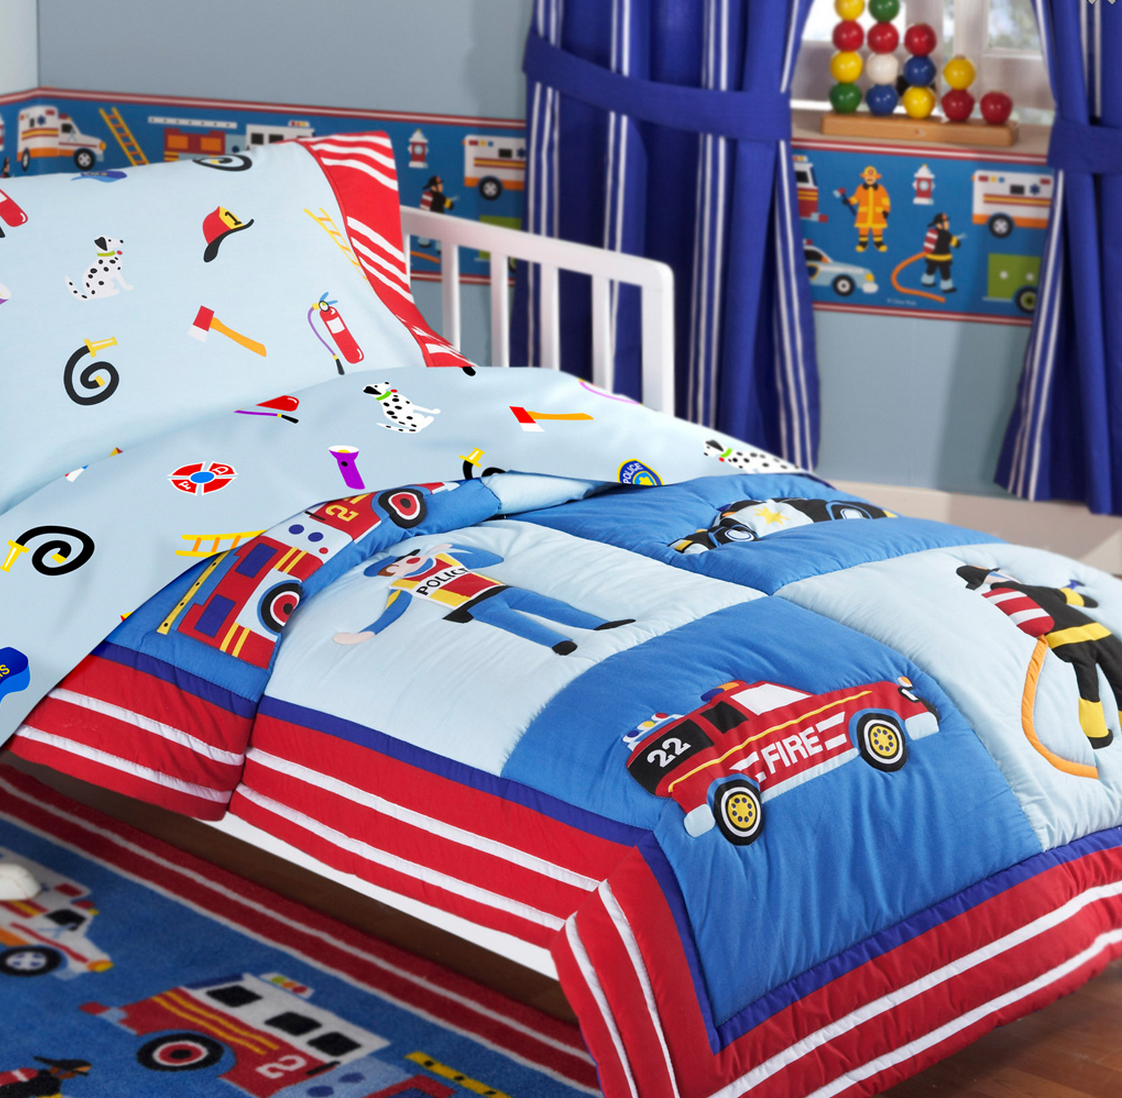 daybed bedding sets for boys photo - 3